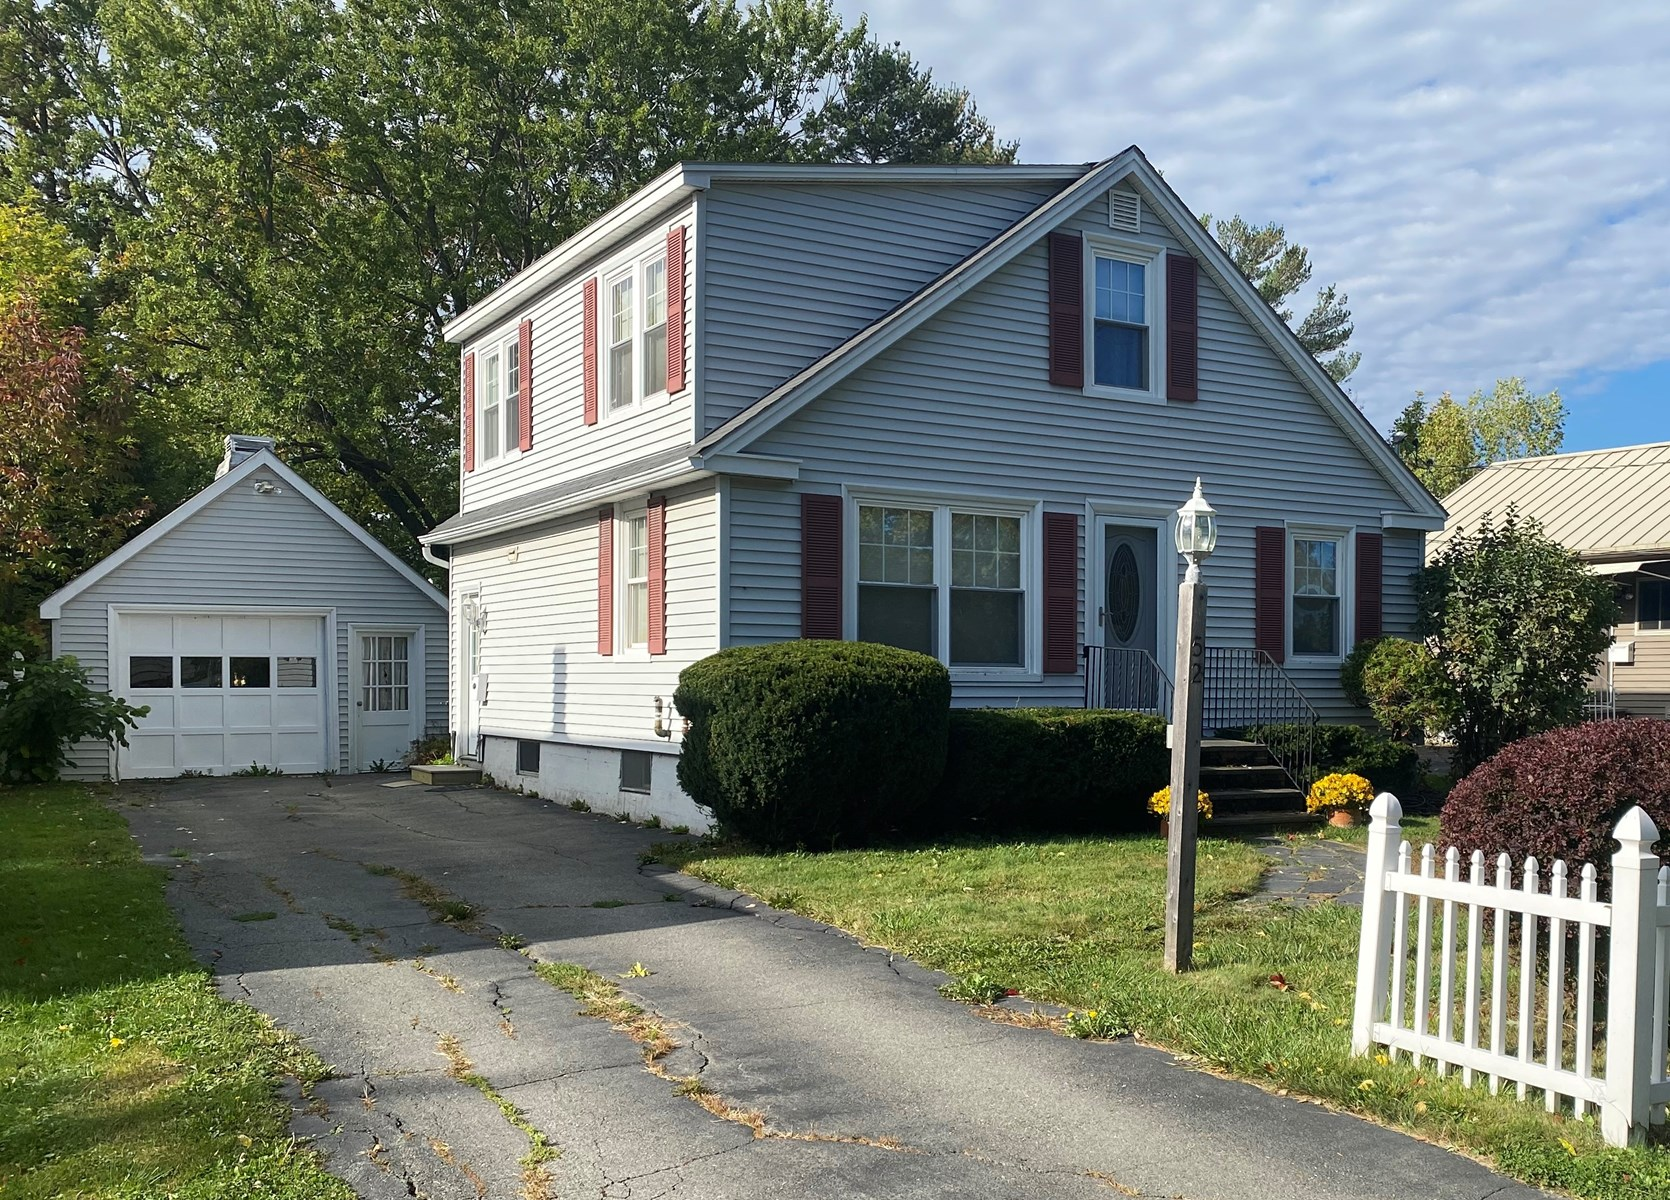 Home For Sale in Bangor, Maine